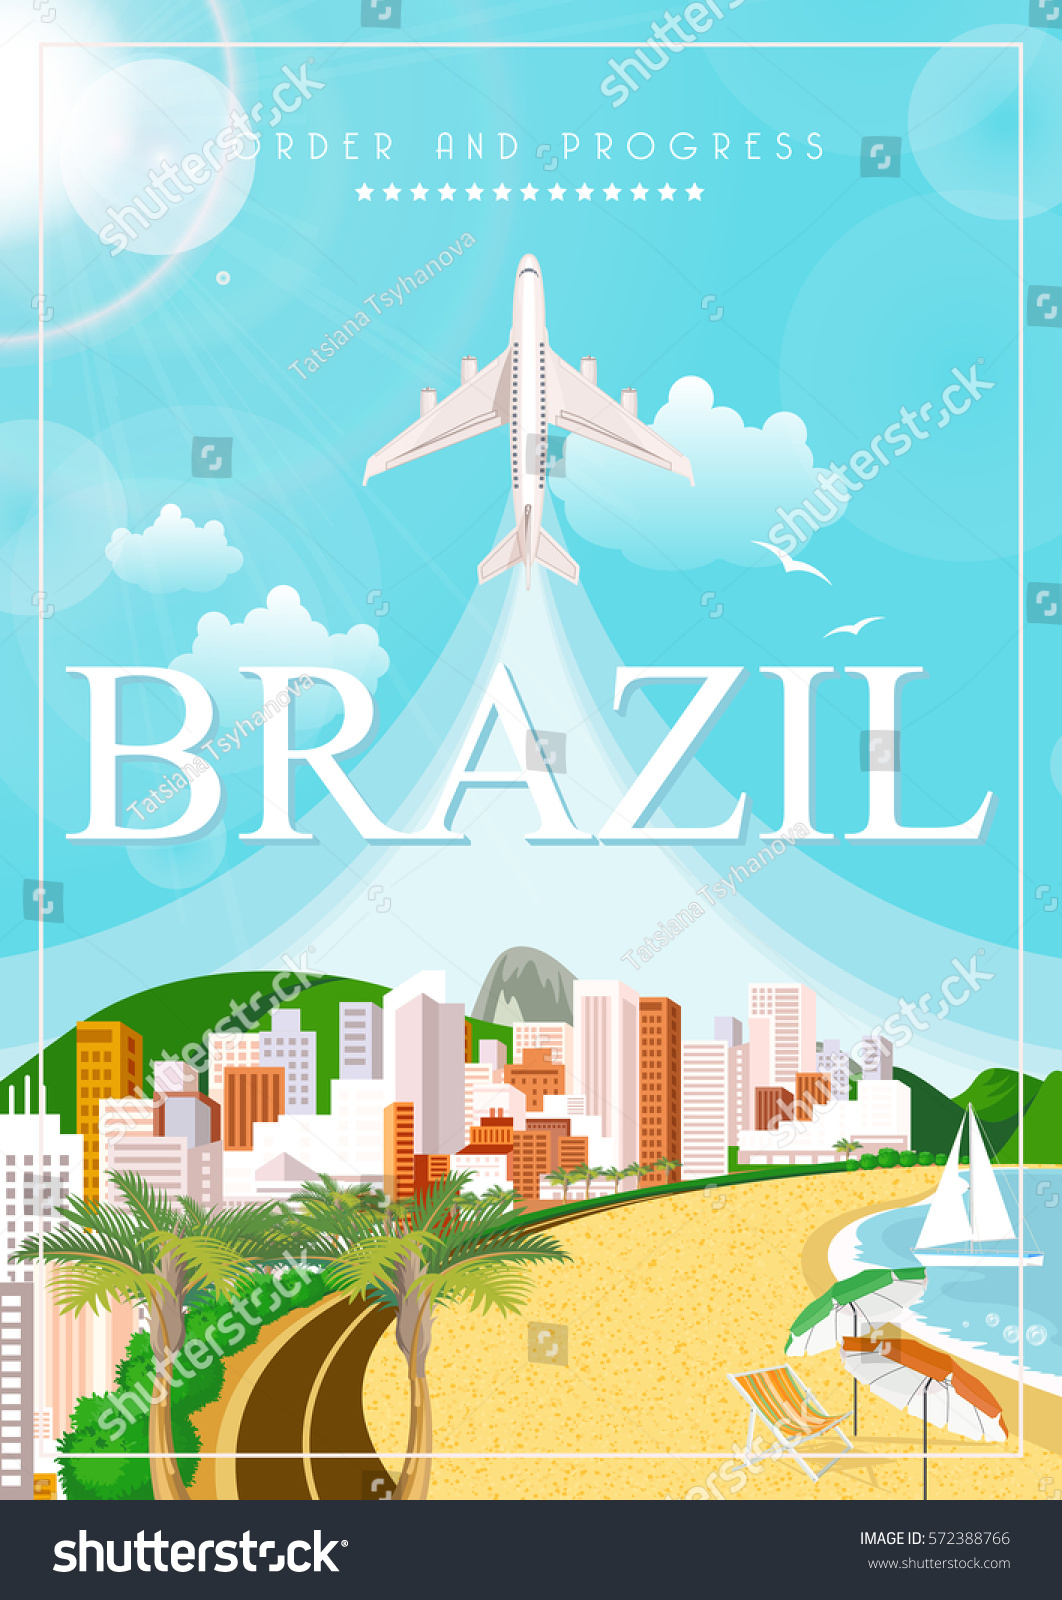 Poster design landscape - Vector Travel Poster Of Brazil With Colorful Modern Design Brazilian Landscape And Monuments